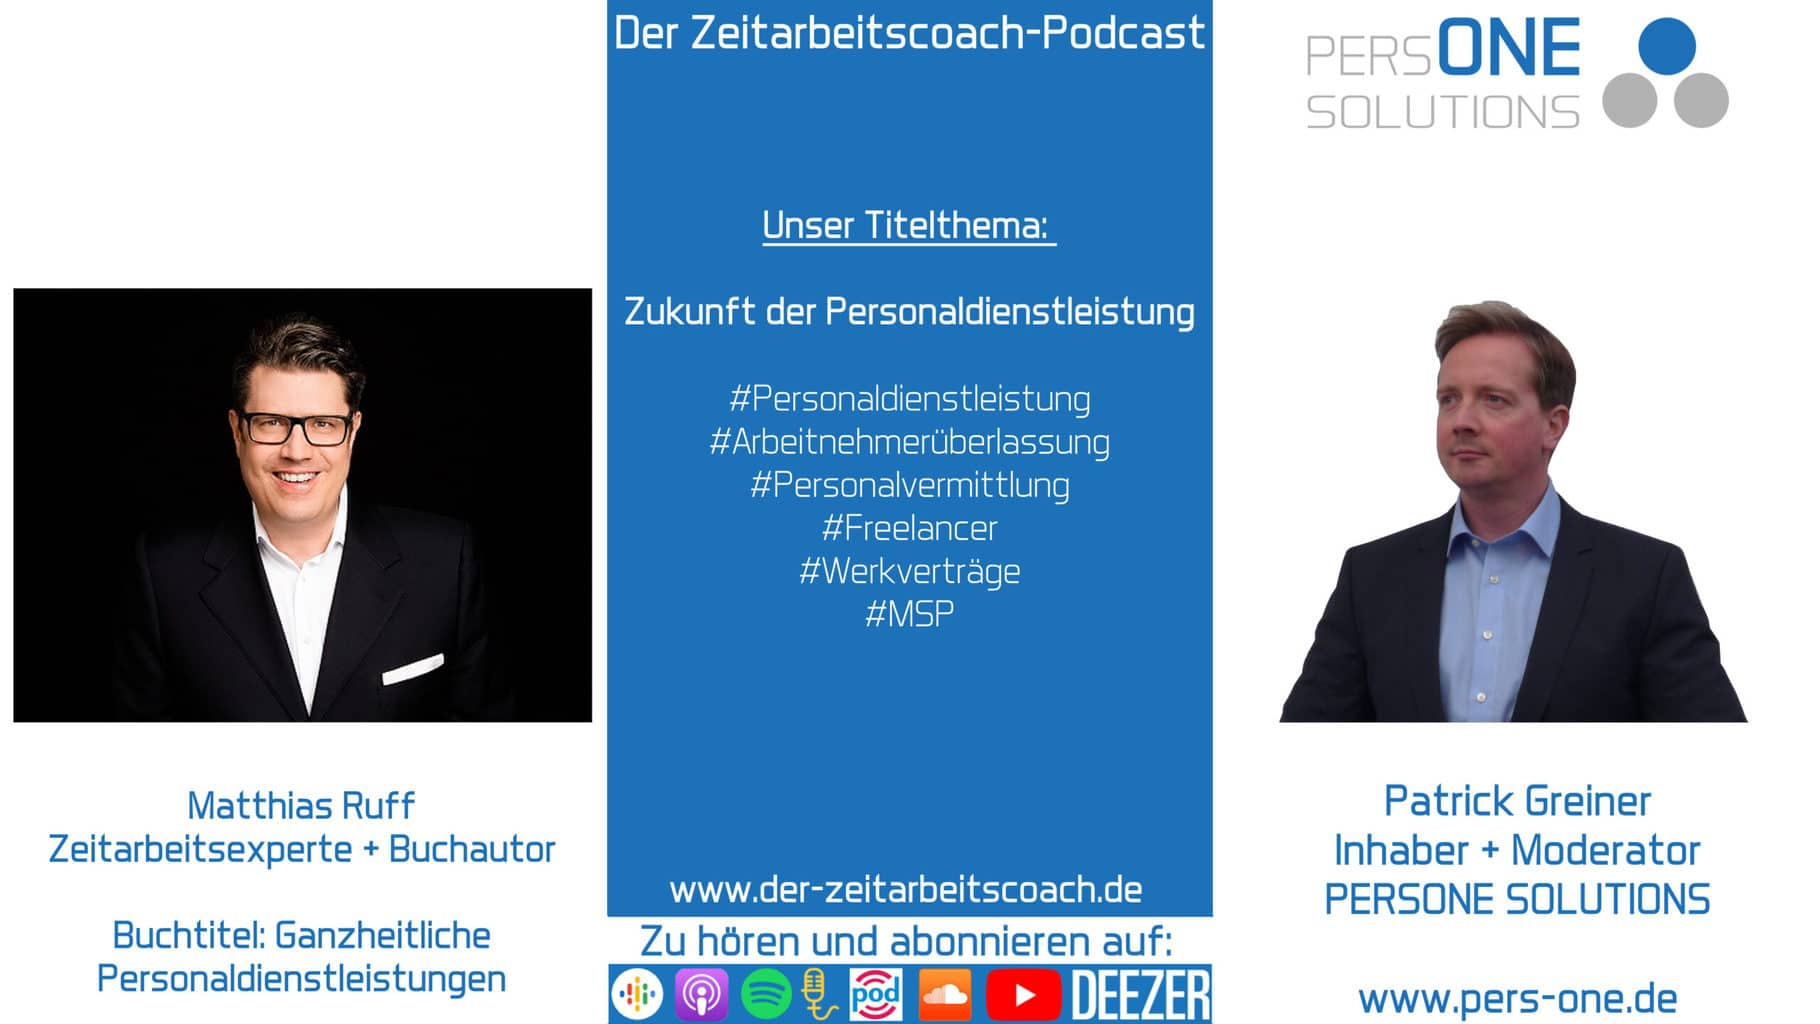 Ruff, Matthias_Podcast SM Grafik-Interview_Zeitarbeitscoach-Podcast